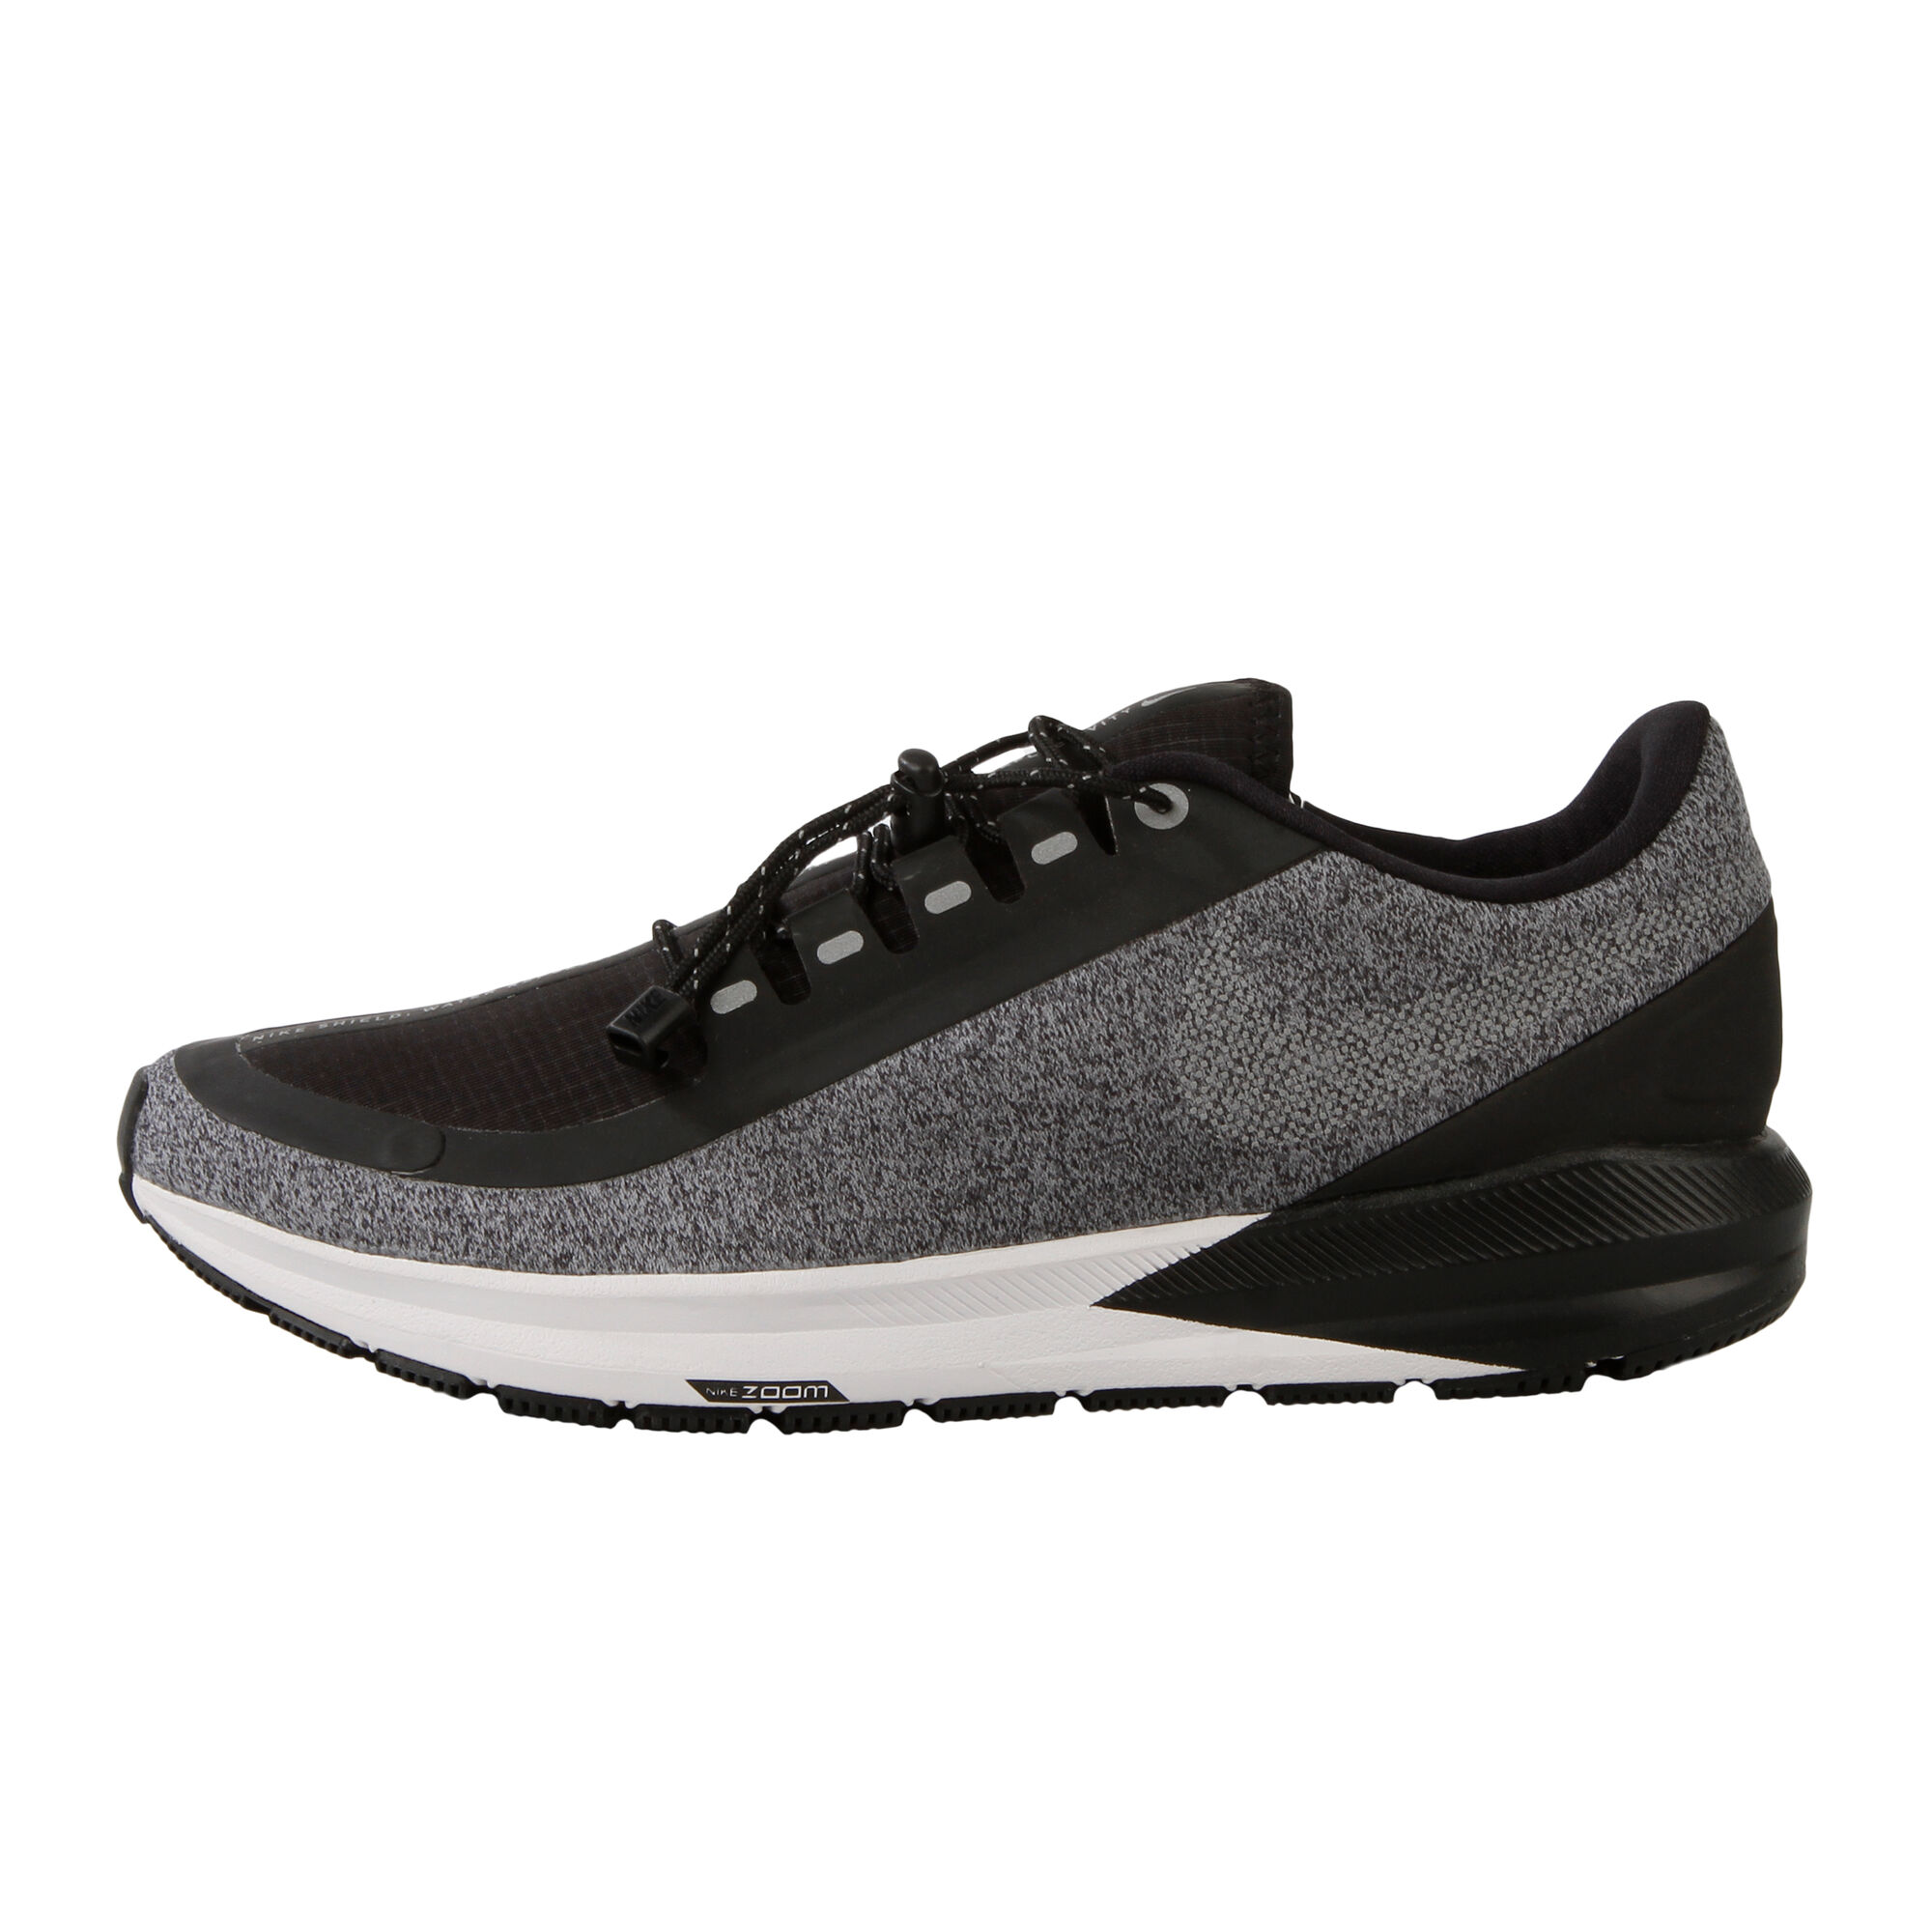 a3ae2092a68 buy Nike Air Zoom Structure 22 Shield Stability Running Shoe Women ...